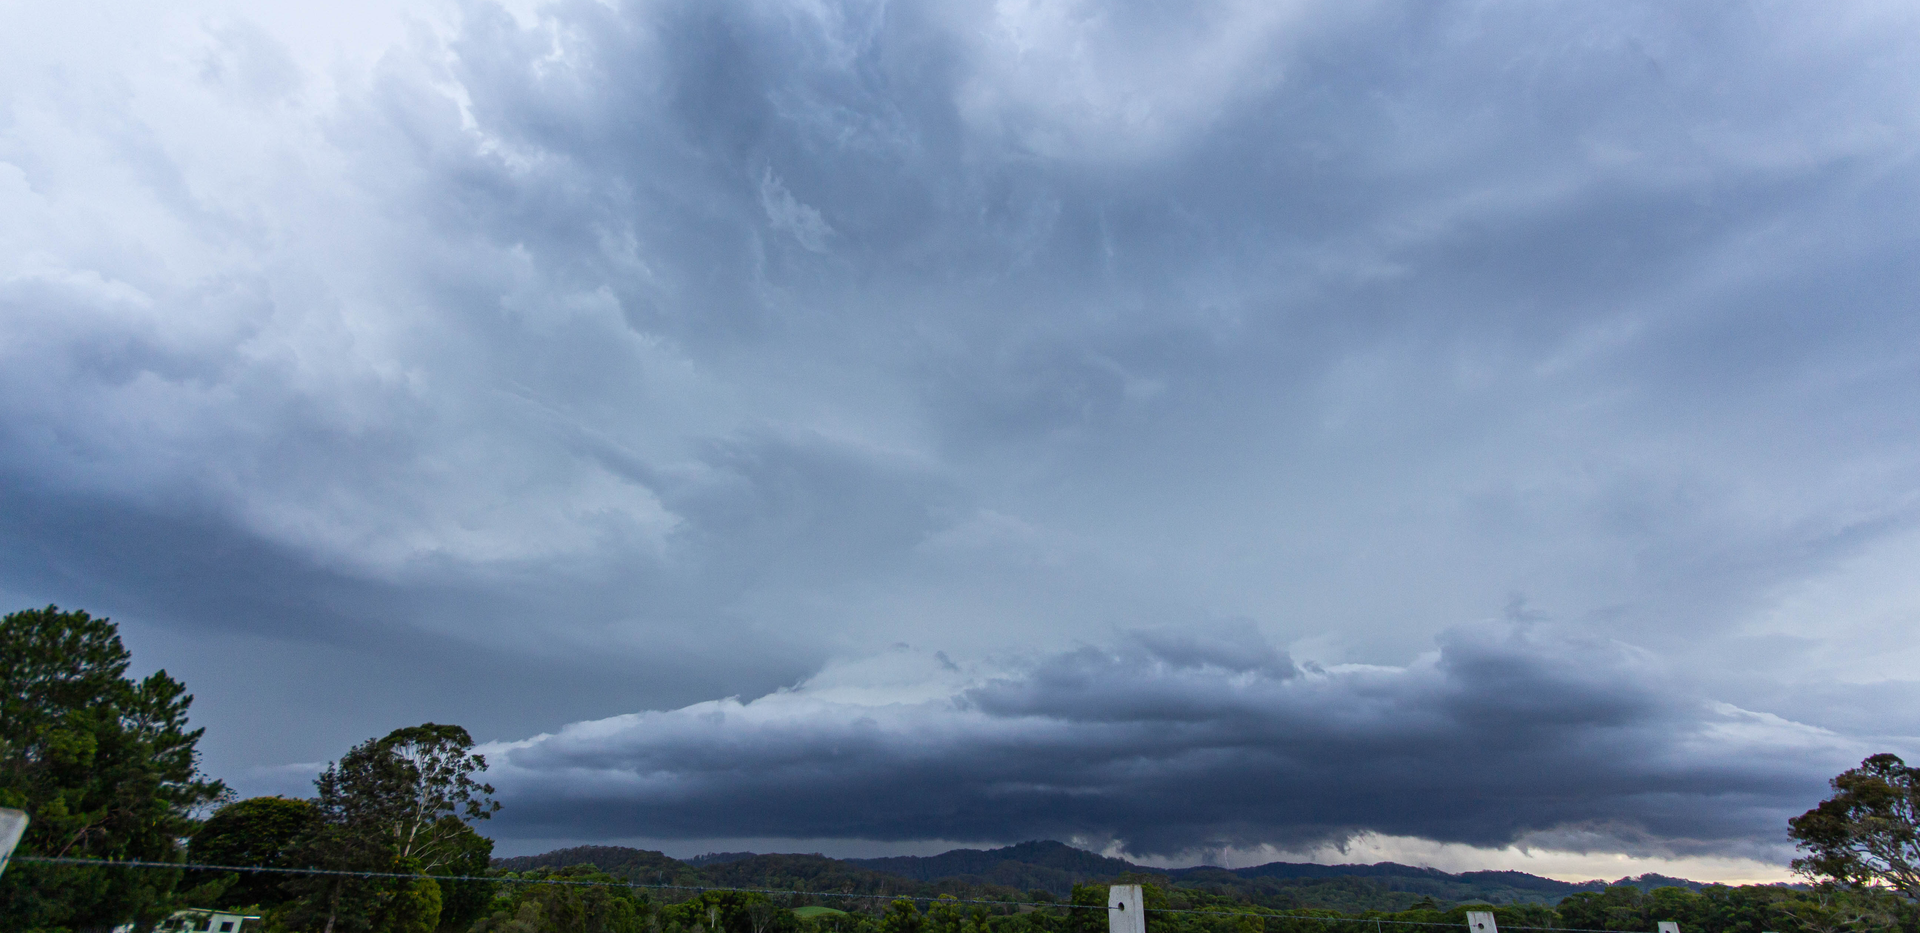 Multicell/supercell